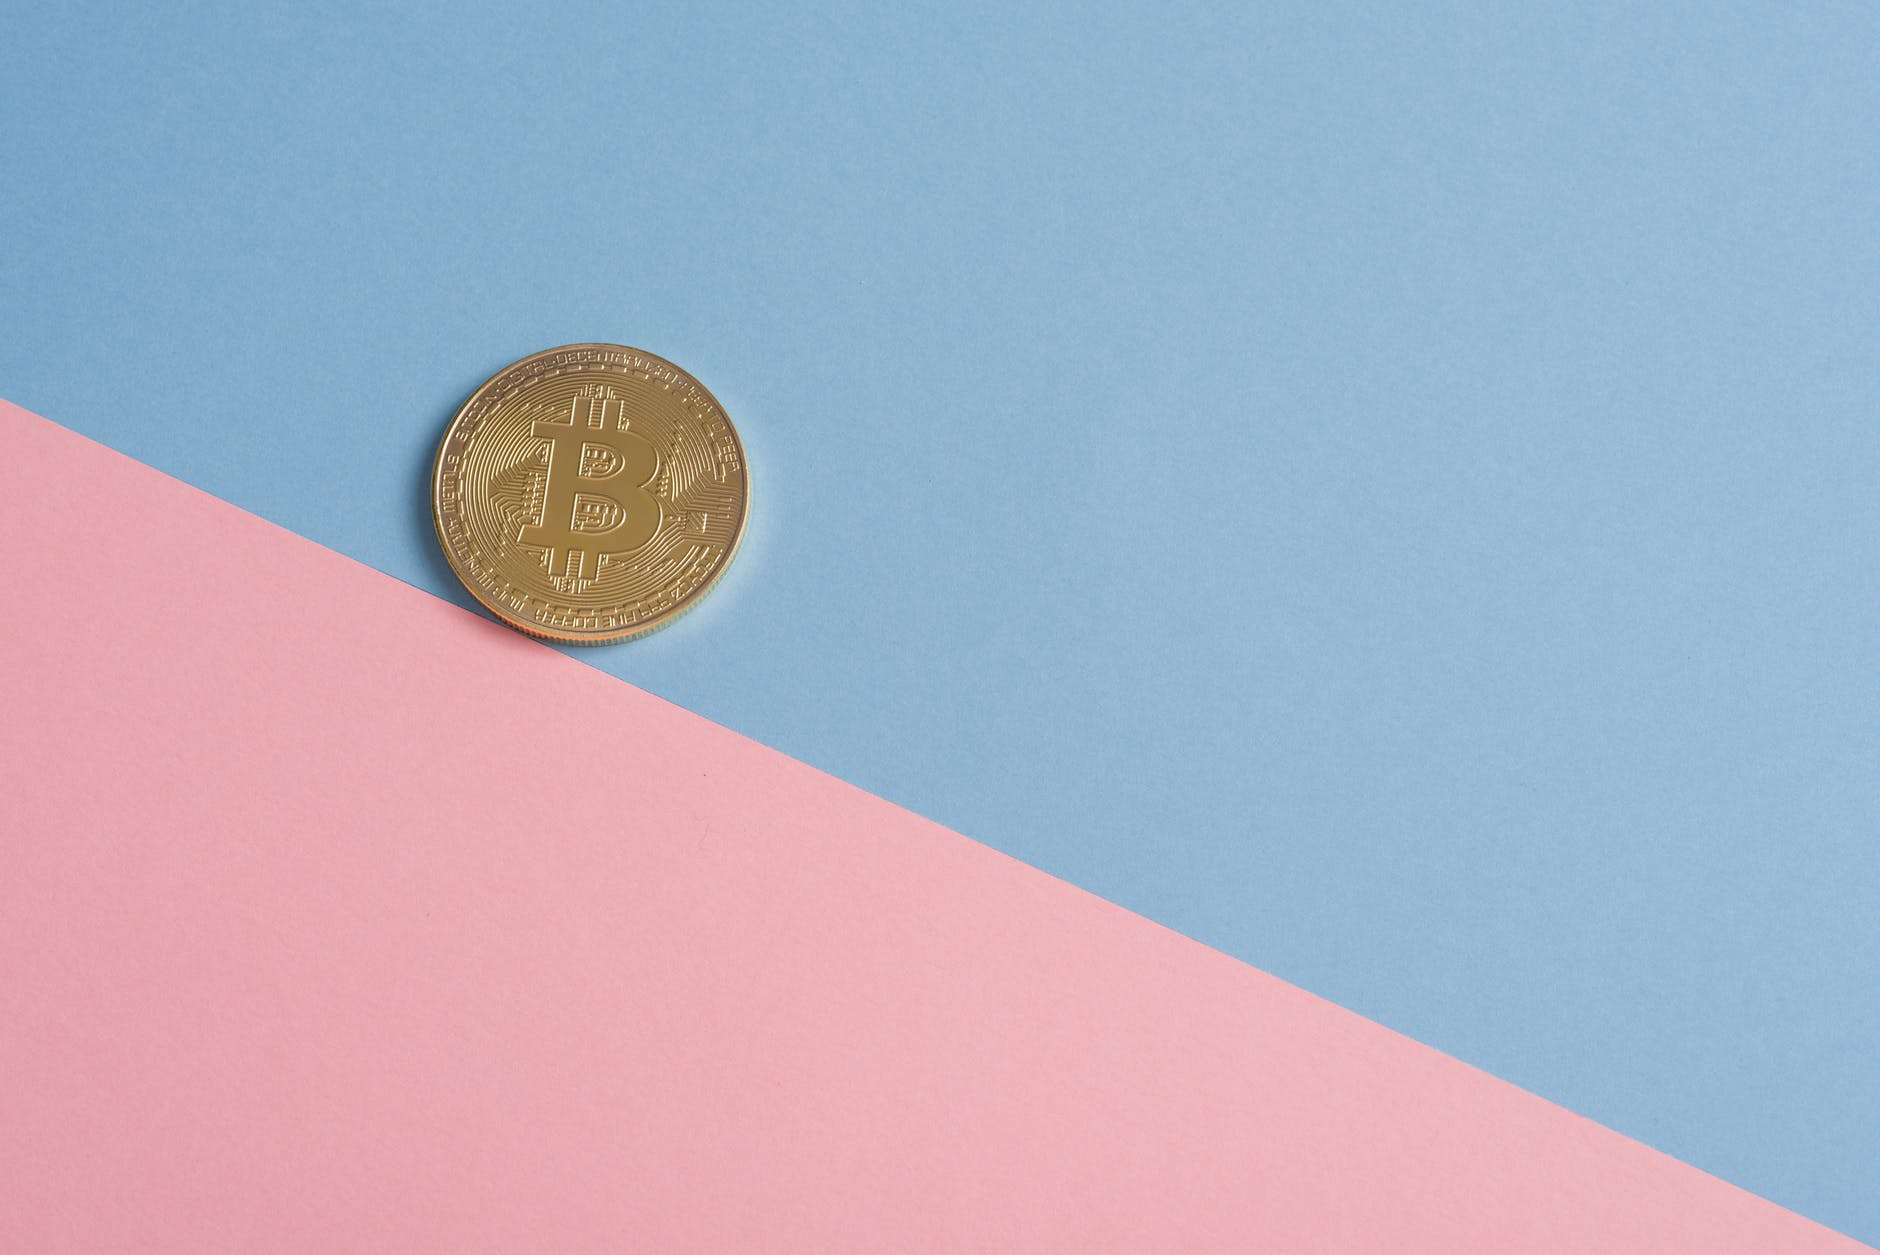 Bitcoin on pink and blue background